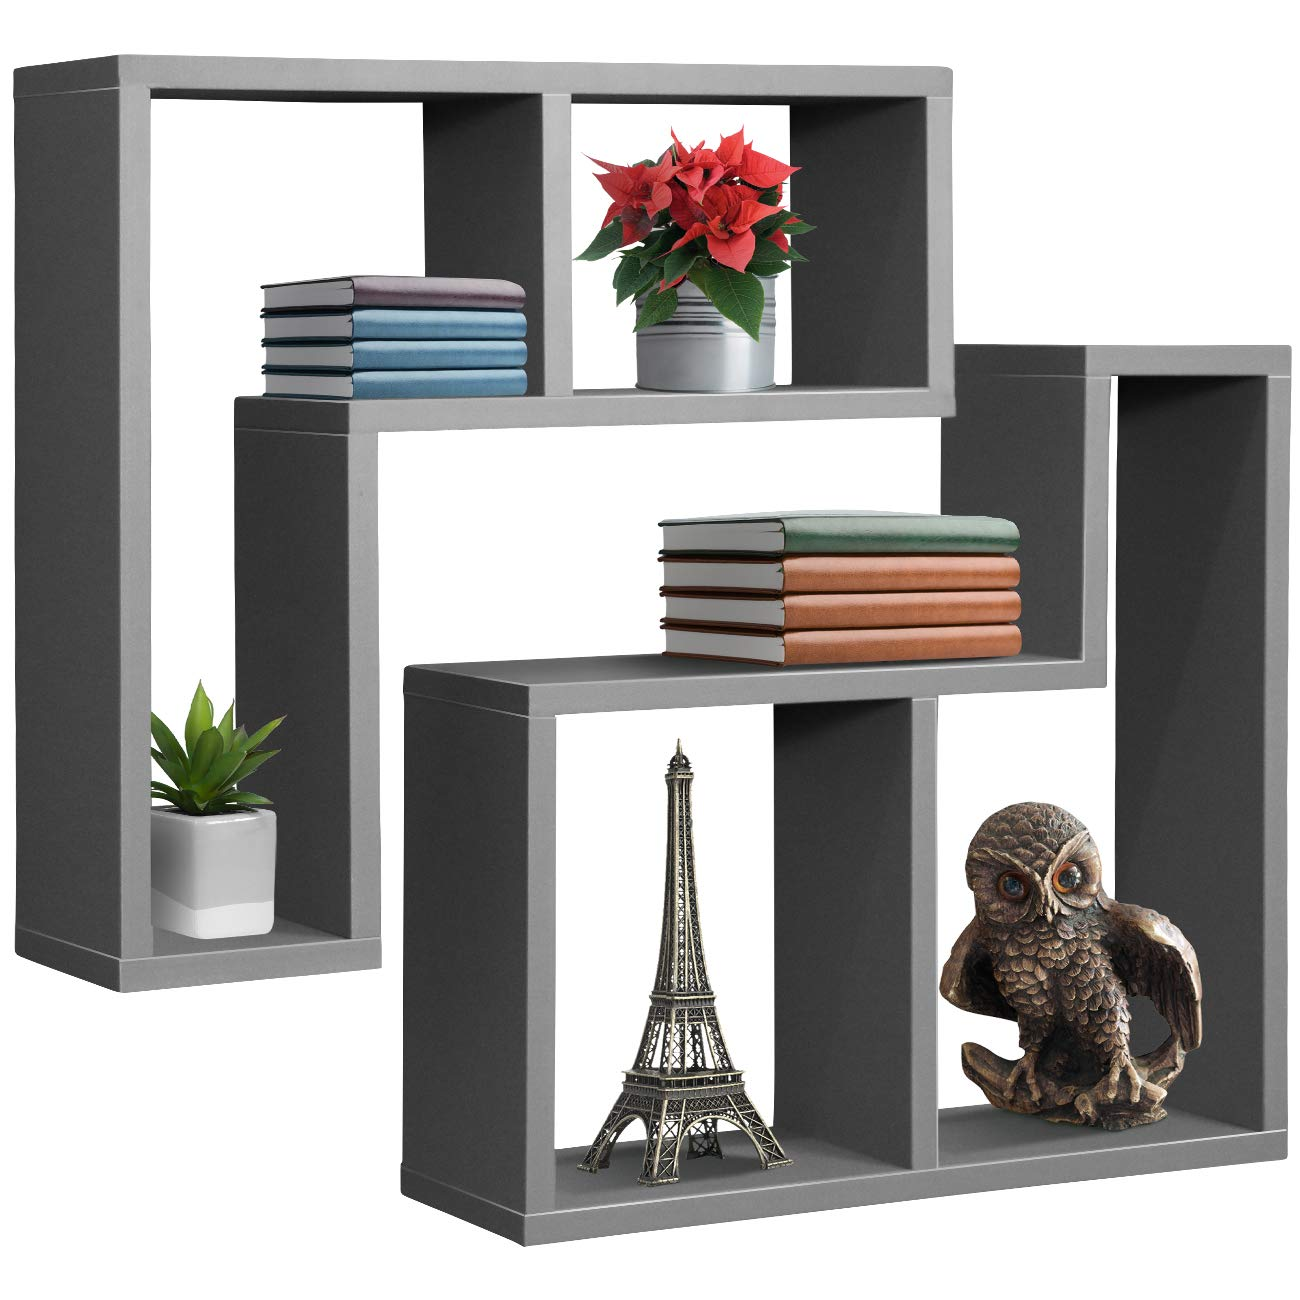 Sorbus Floating Shelf L-shaped Set — L-ledge Wall Shelves With 2 Openings,  Decorative Hanging Display For Photo Frames, Collectibles, And Home Dã©cor